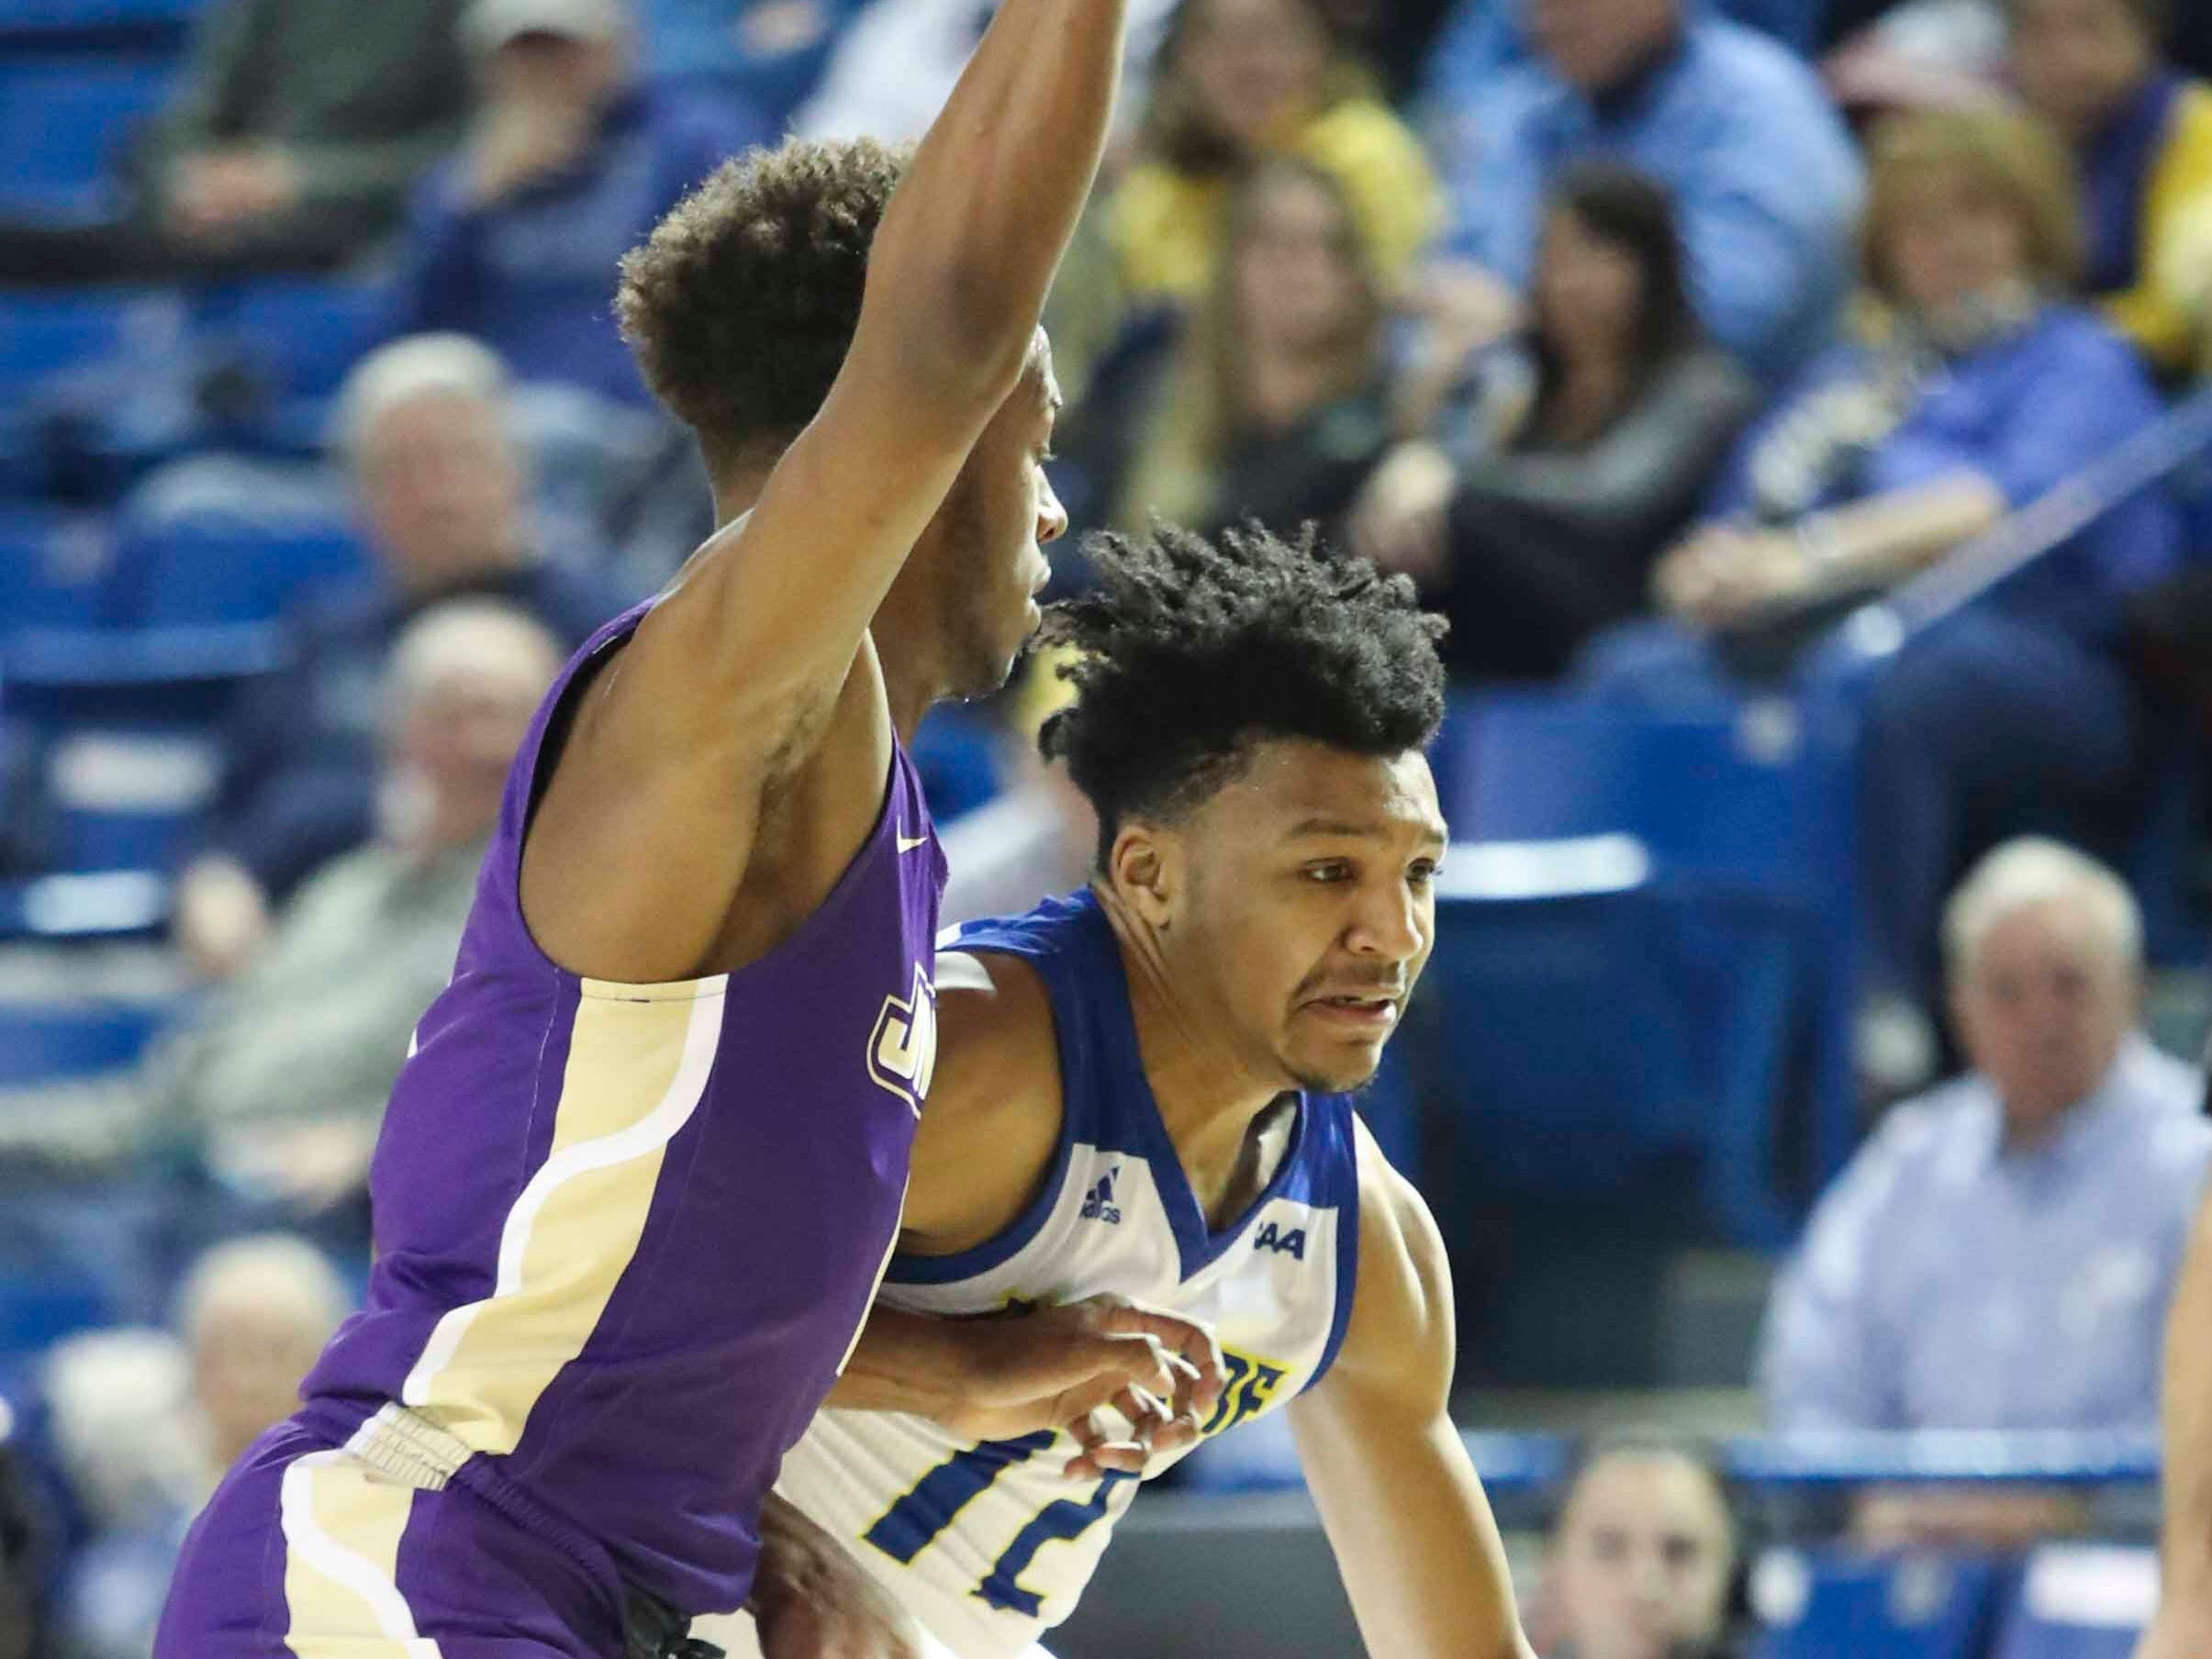 Delaware's Ithiel Horton drives as James Madison's Matt Lewis defends in the first half at the Bob Carpenter Center Thursday.